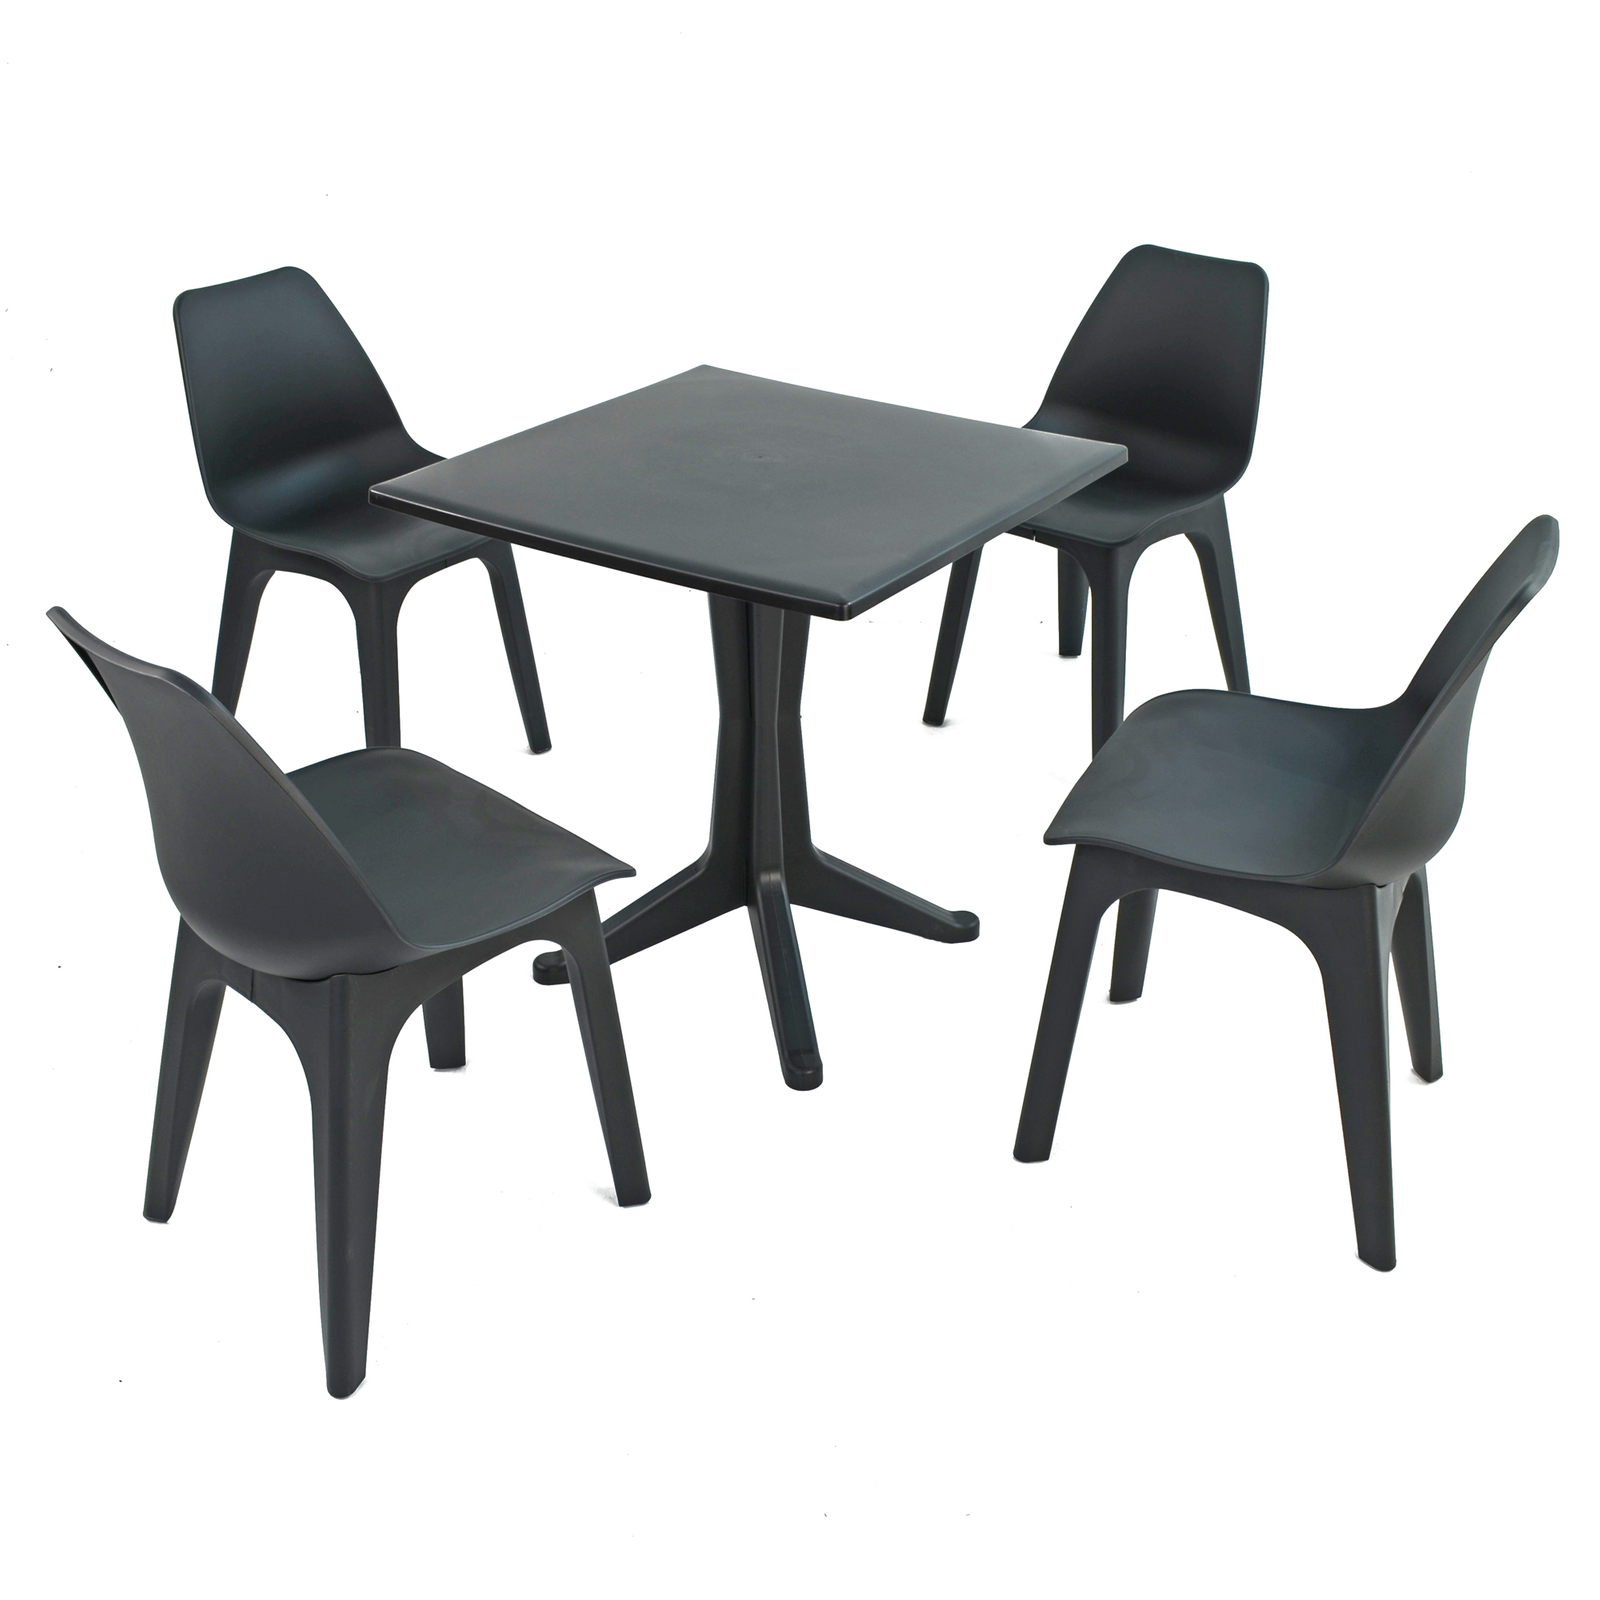 Trabella Anthracite Ponente Dining Table With 4 Eolo Chairs